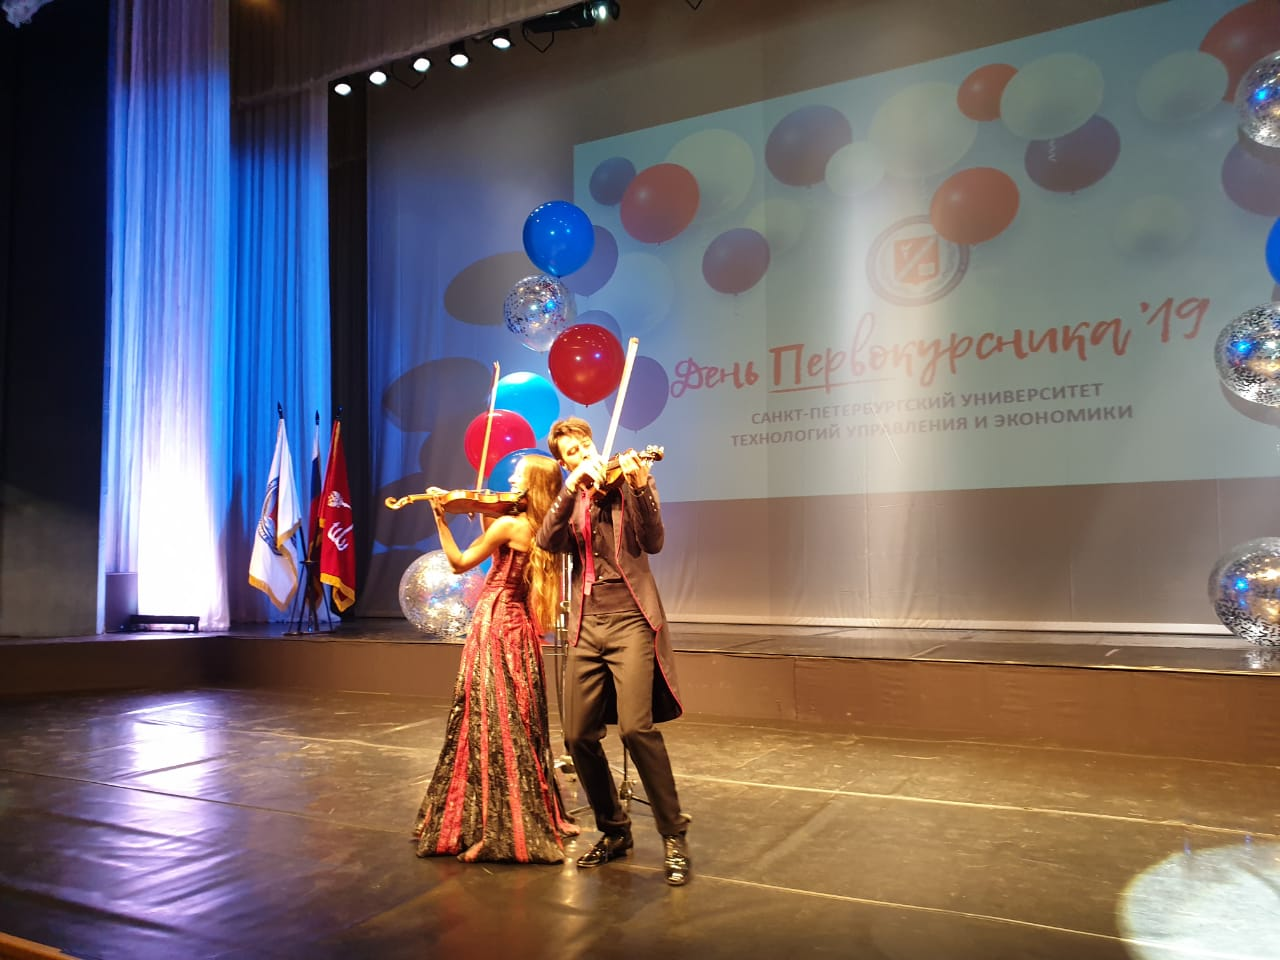 The first-year students received greetings in the Anichkov Palace